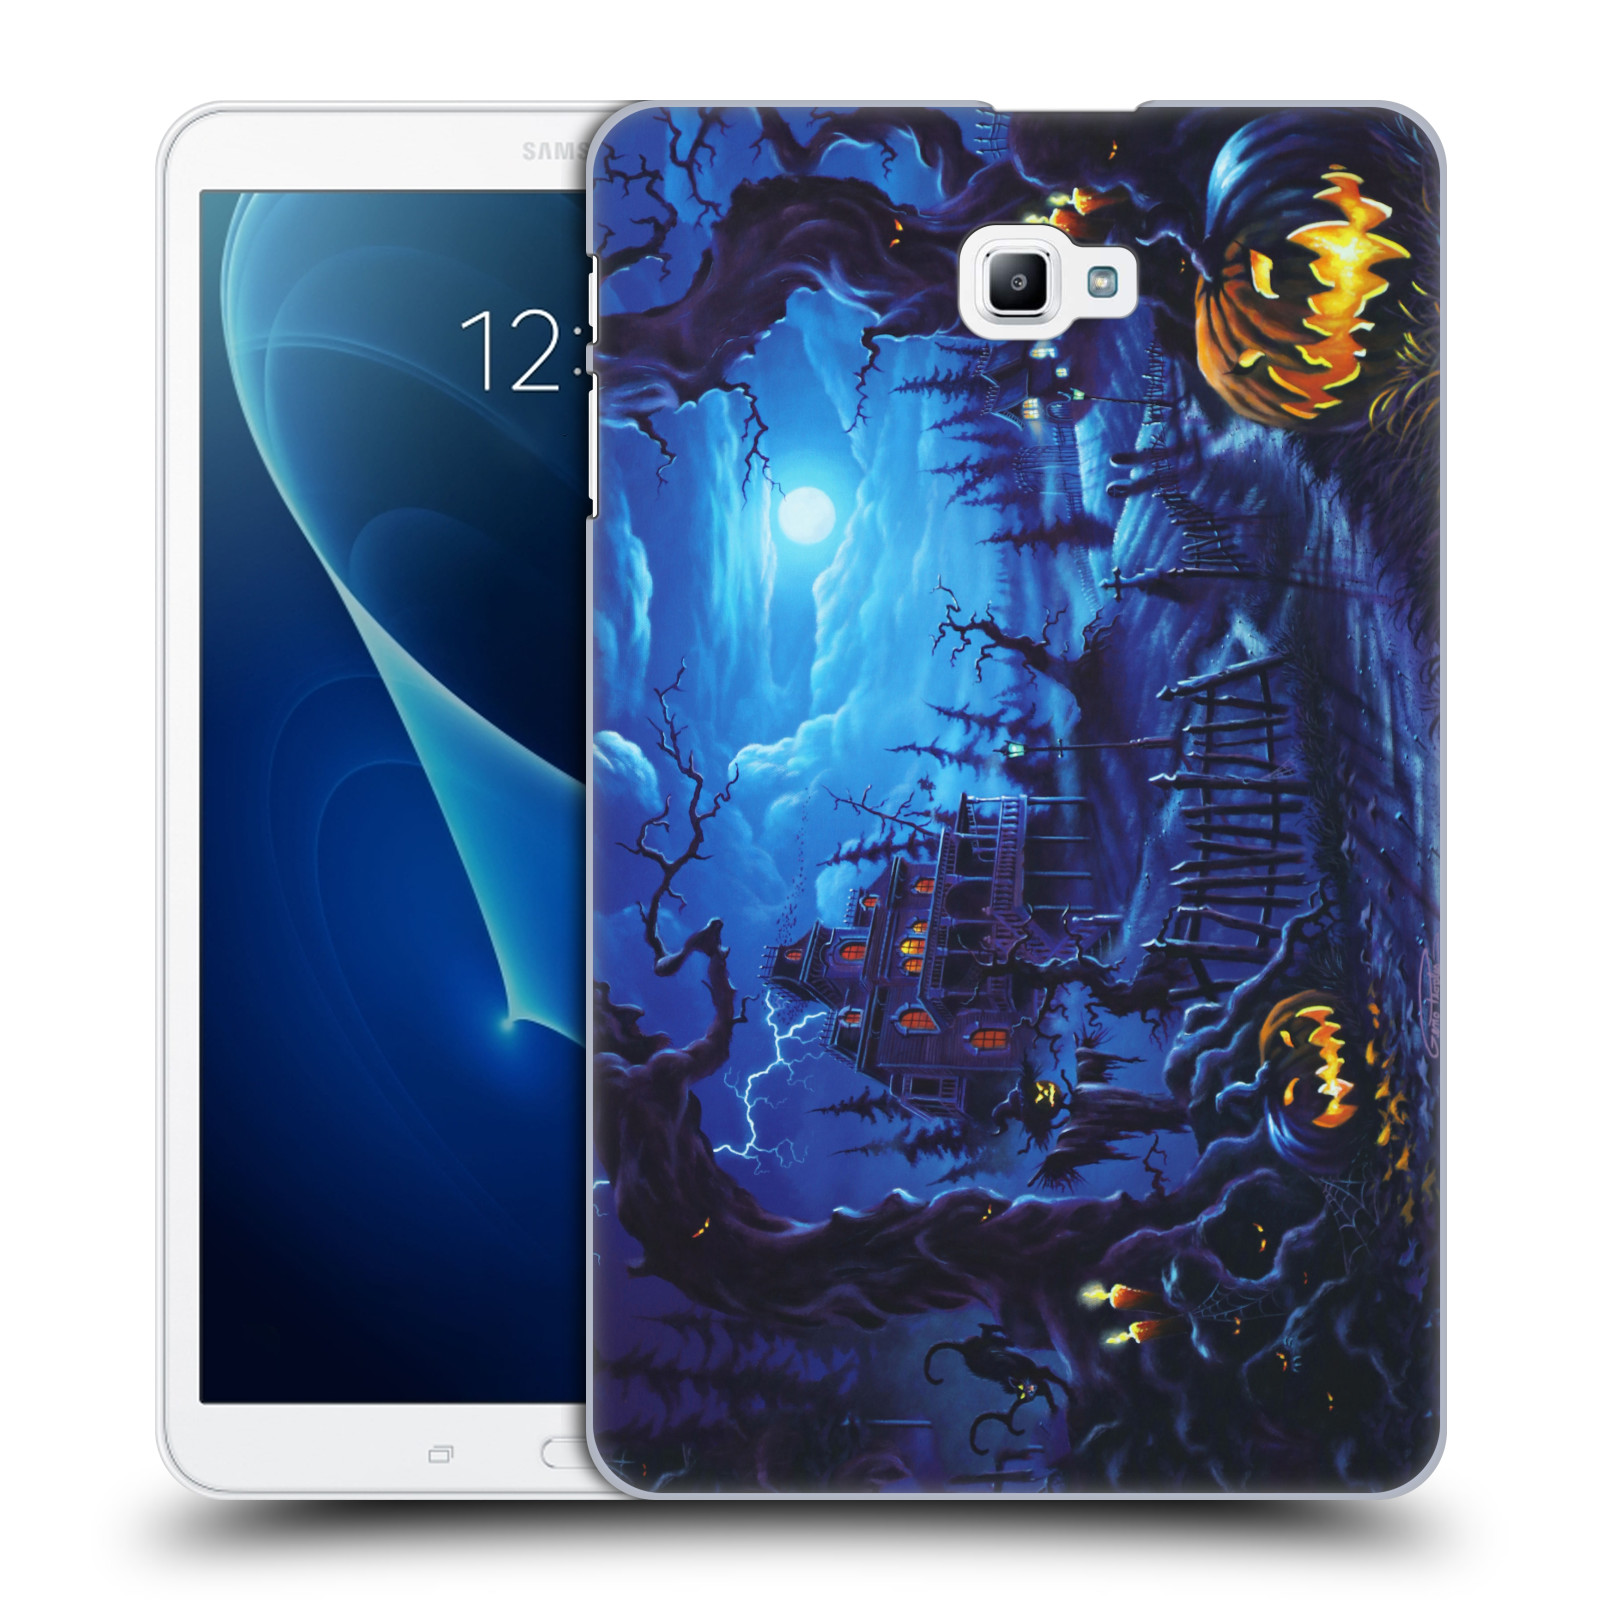 UFFICIALE-GENO-PEOPLES-ART-HALLOWEEN-COVER-RETRO-RIGIDA-PER-SAMSUNG-TABLETS-1